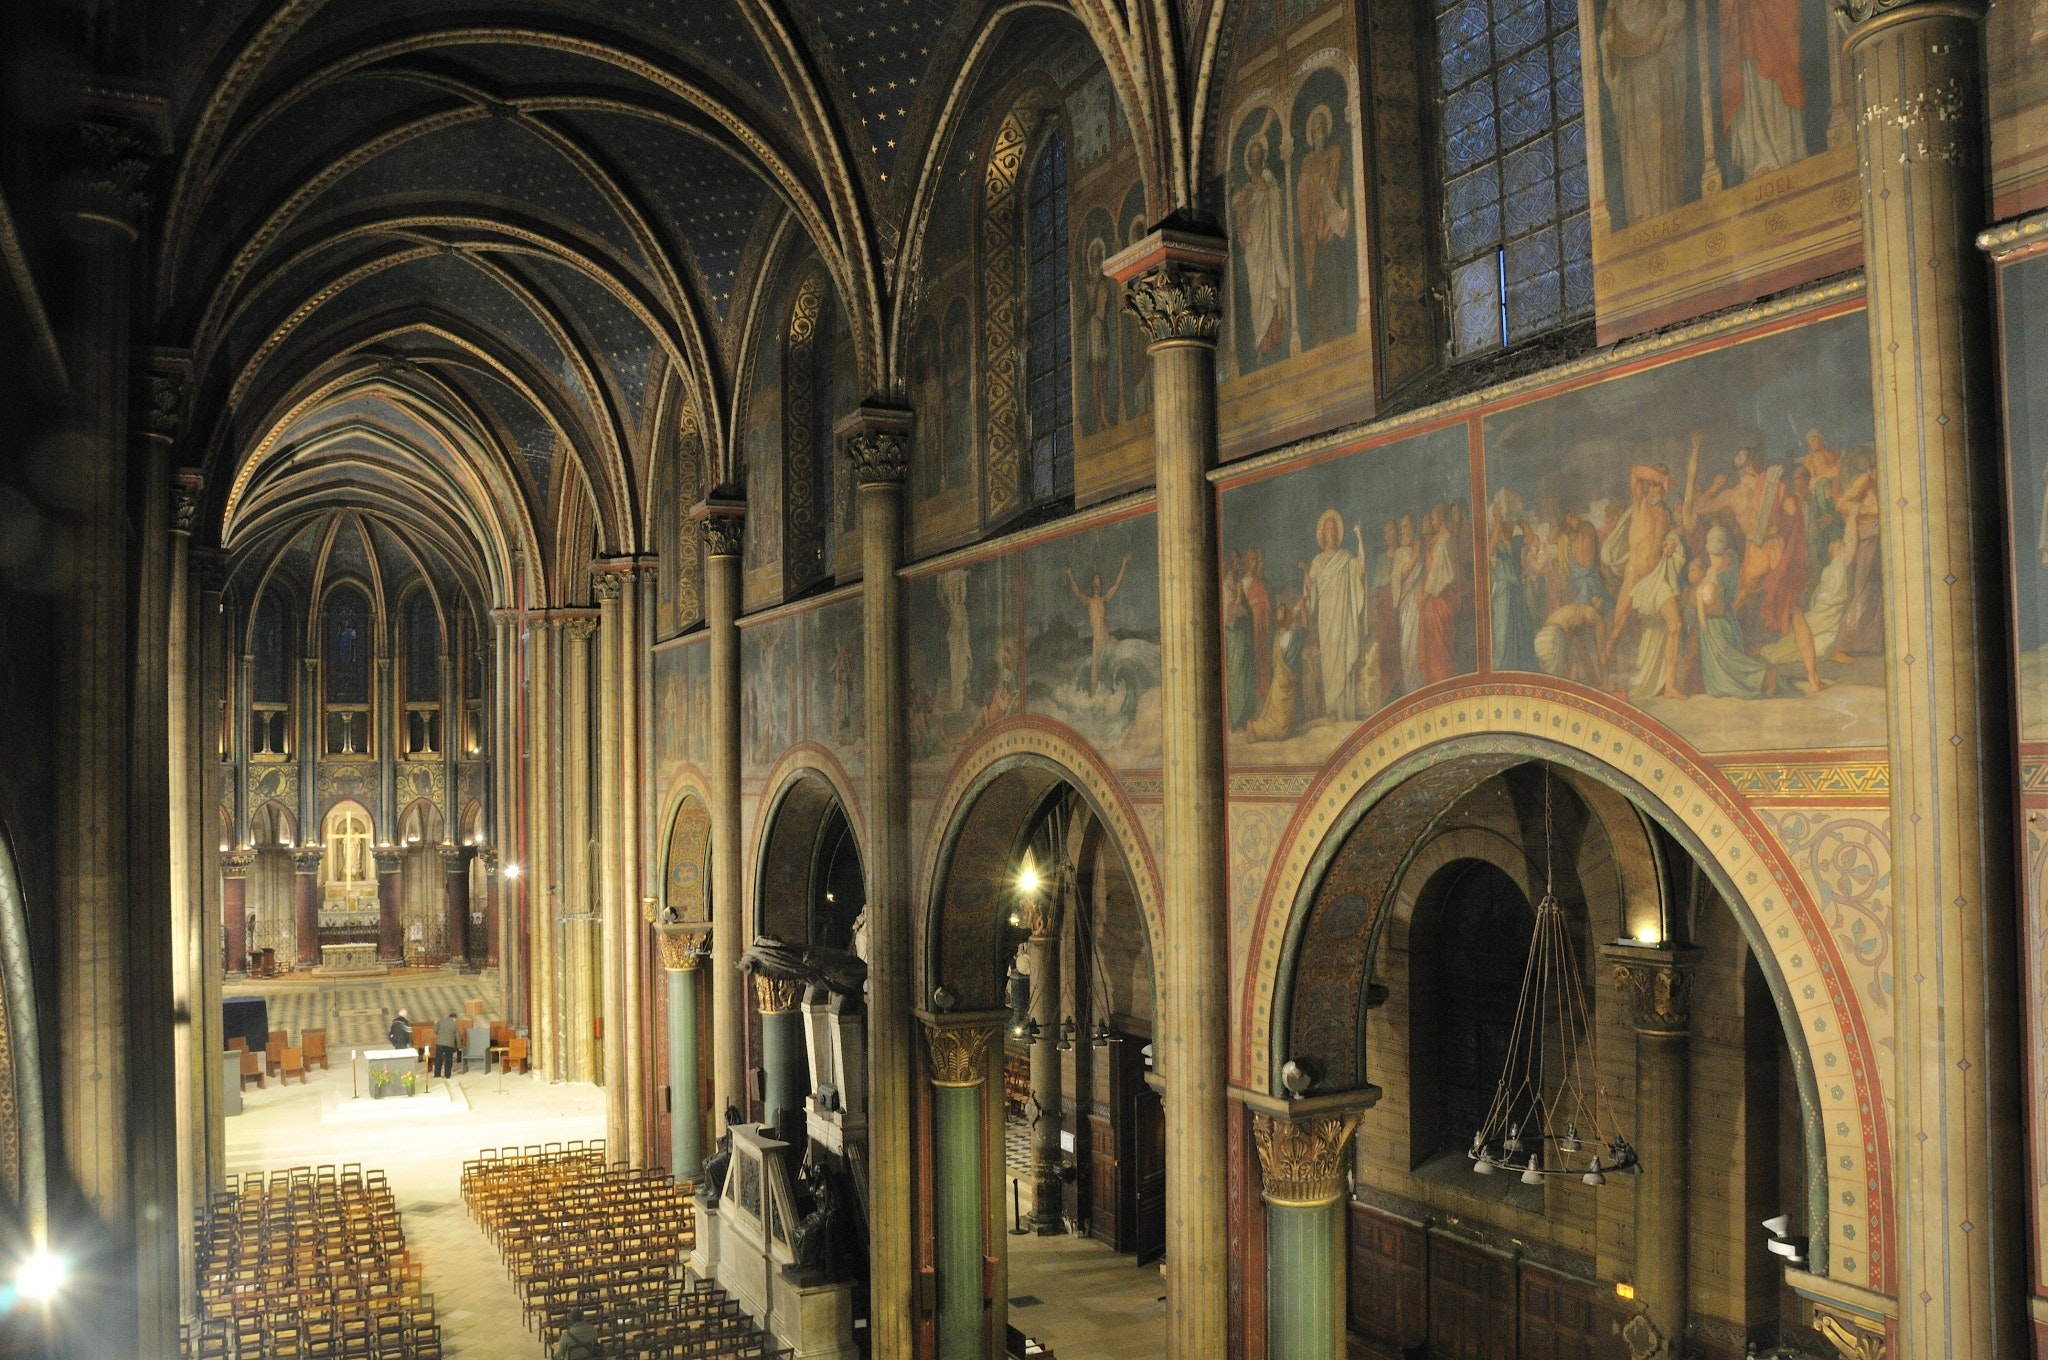 One of the goals of the restoration project is to brighten the church's murals, dimmed over 1,000 years.